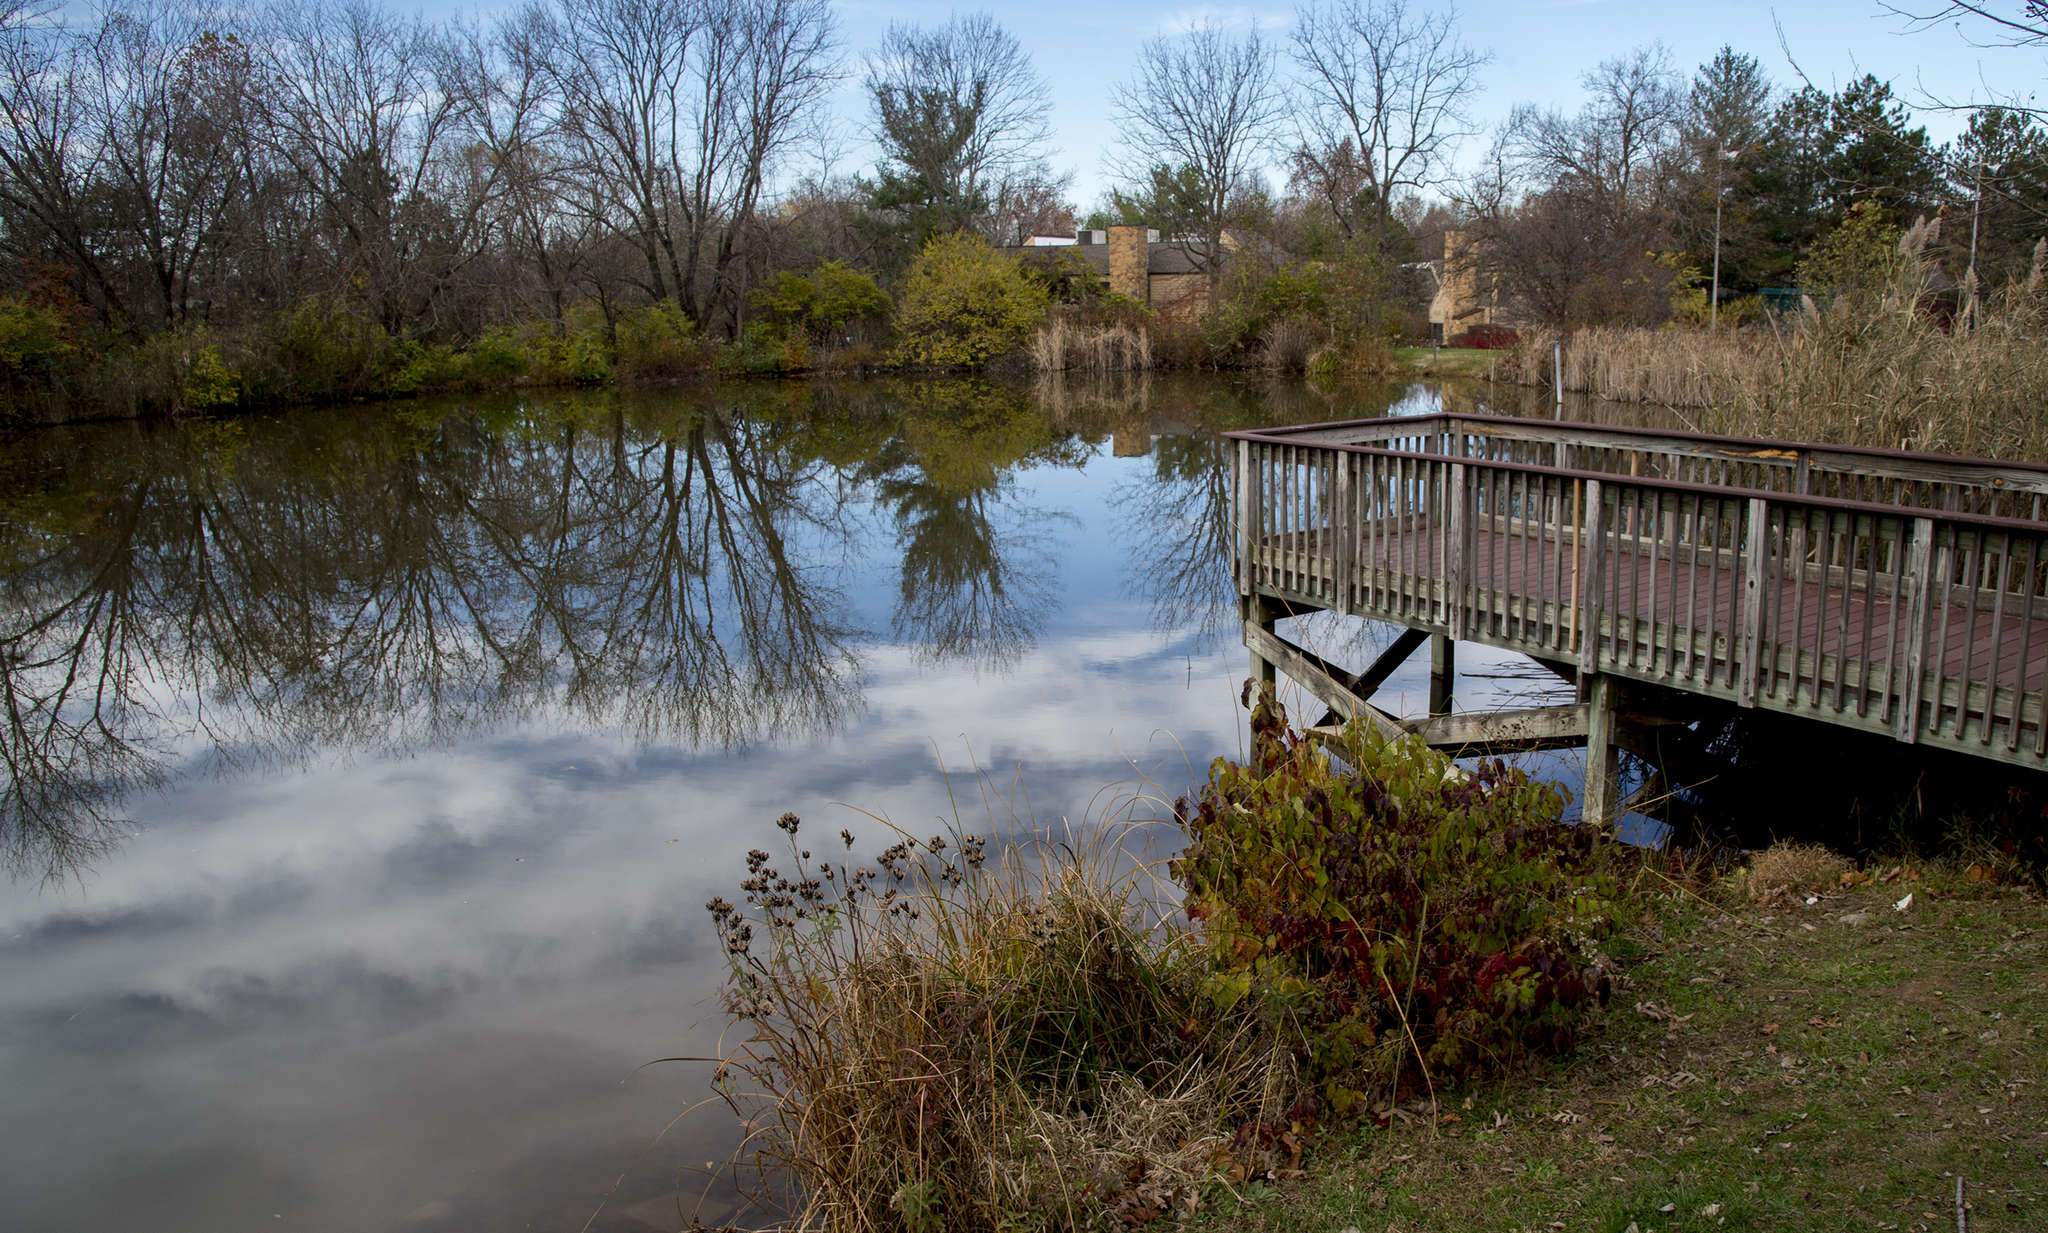 The pond at East Plymouth Valley Park, where locals can also enjoy recreational fields, a picnic area, or just a simple nature walk.